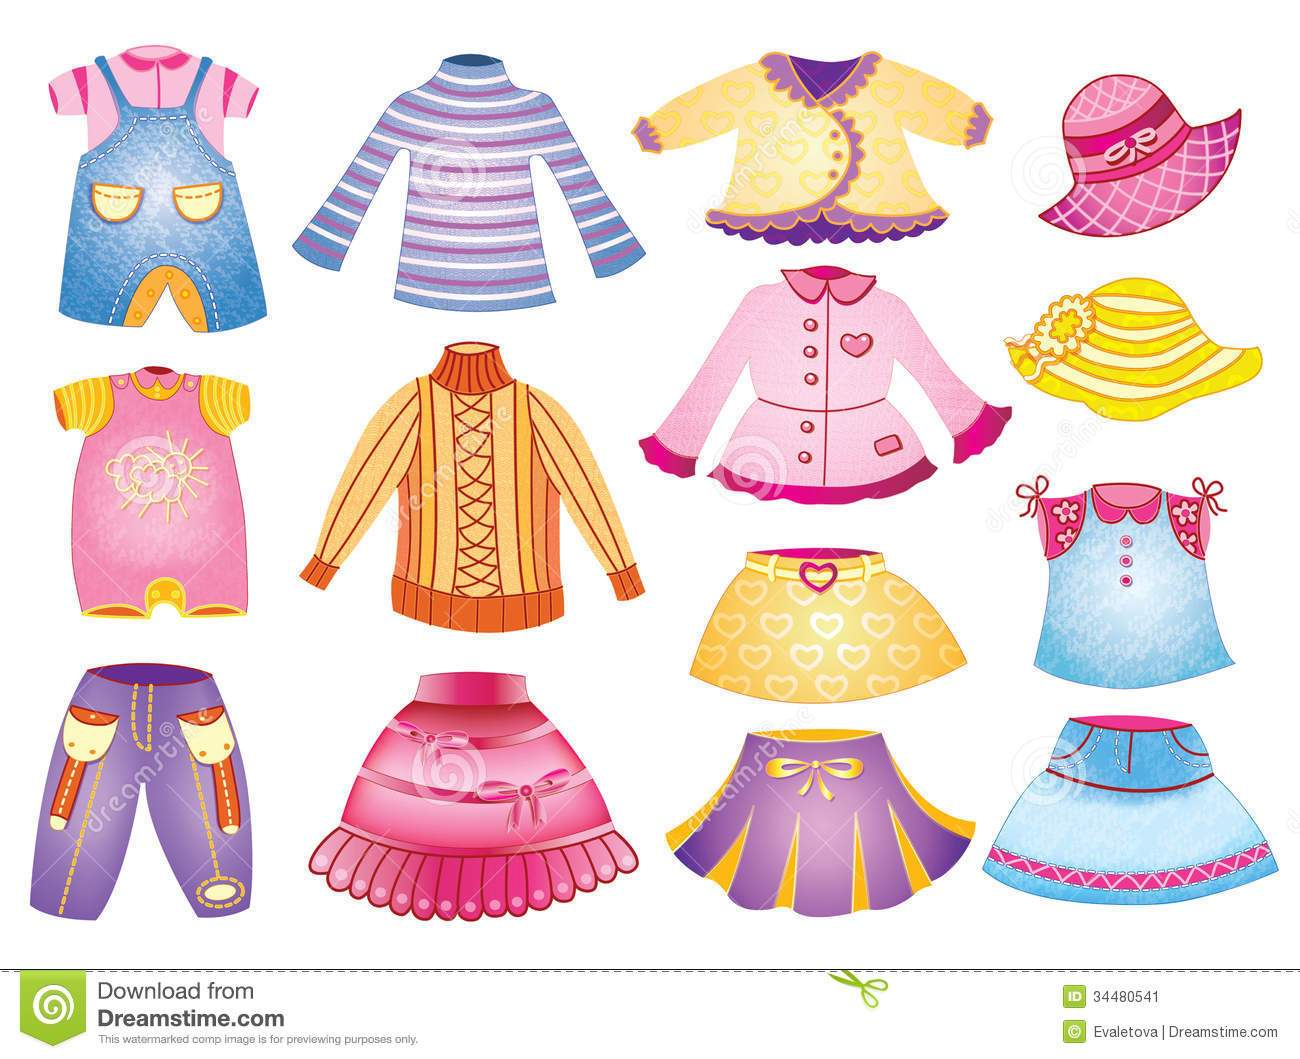 Kids clothes clipart free 6 » Clipart Portal.